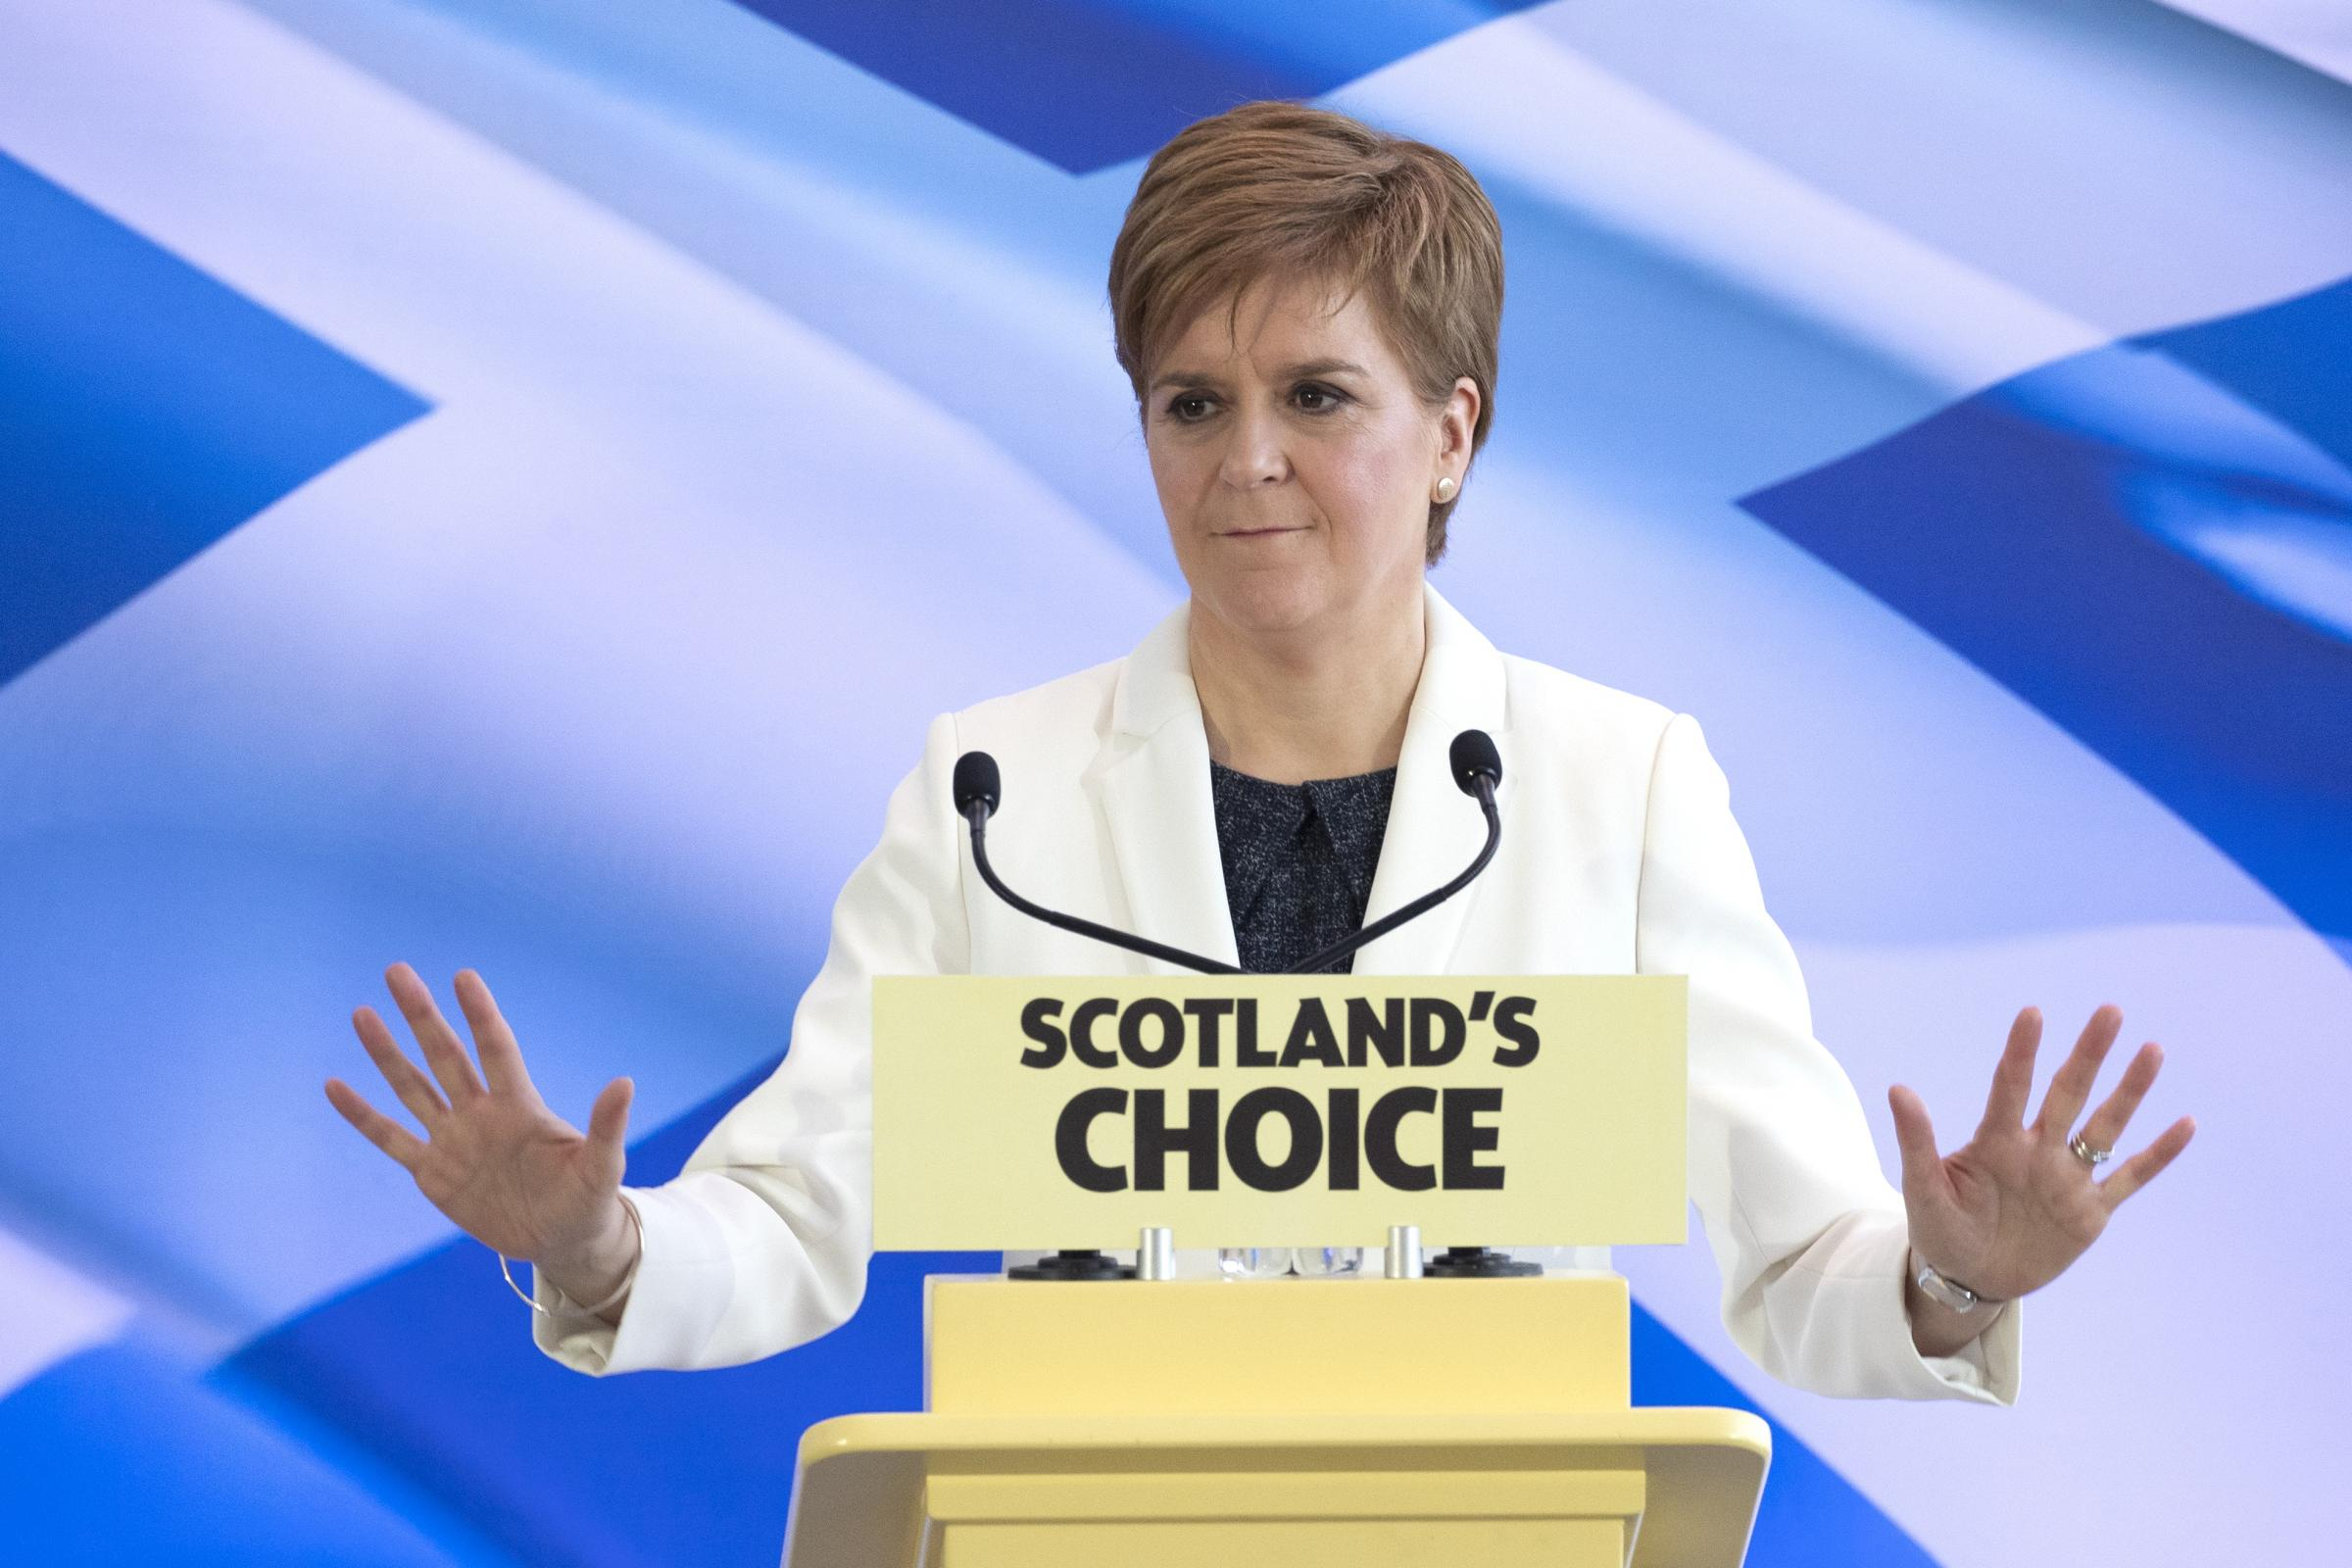 Nicola Sturgeon sends Downing Street letter over 'harmful' immigration plans